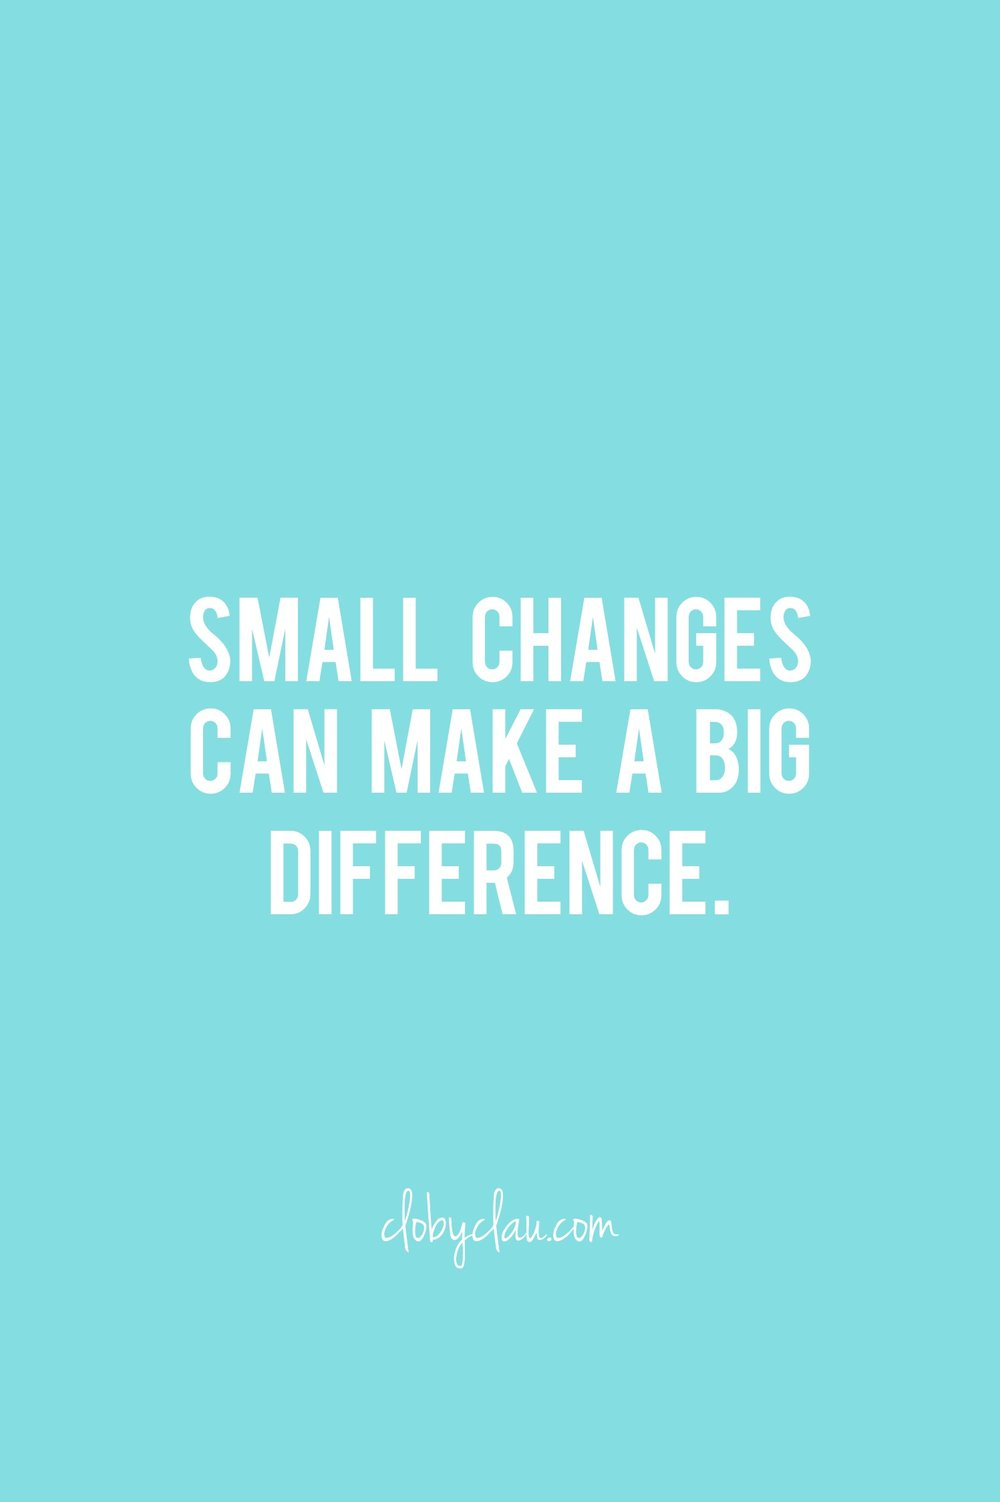 small-changes-can-make-a-big-difference.jpg